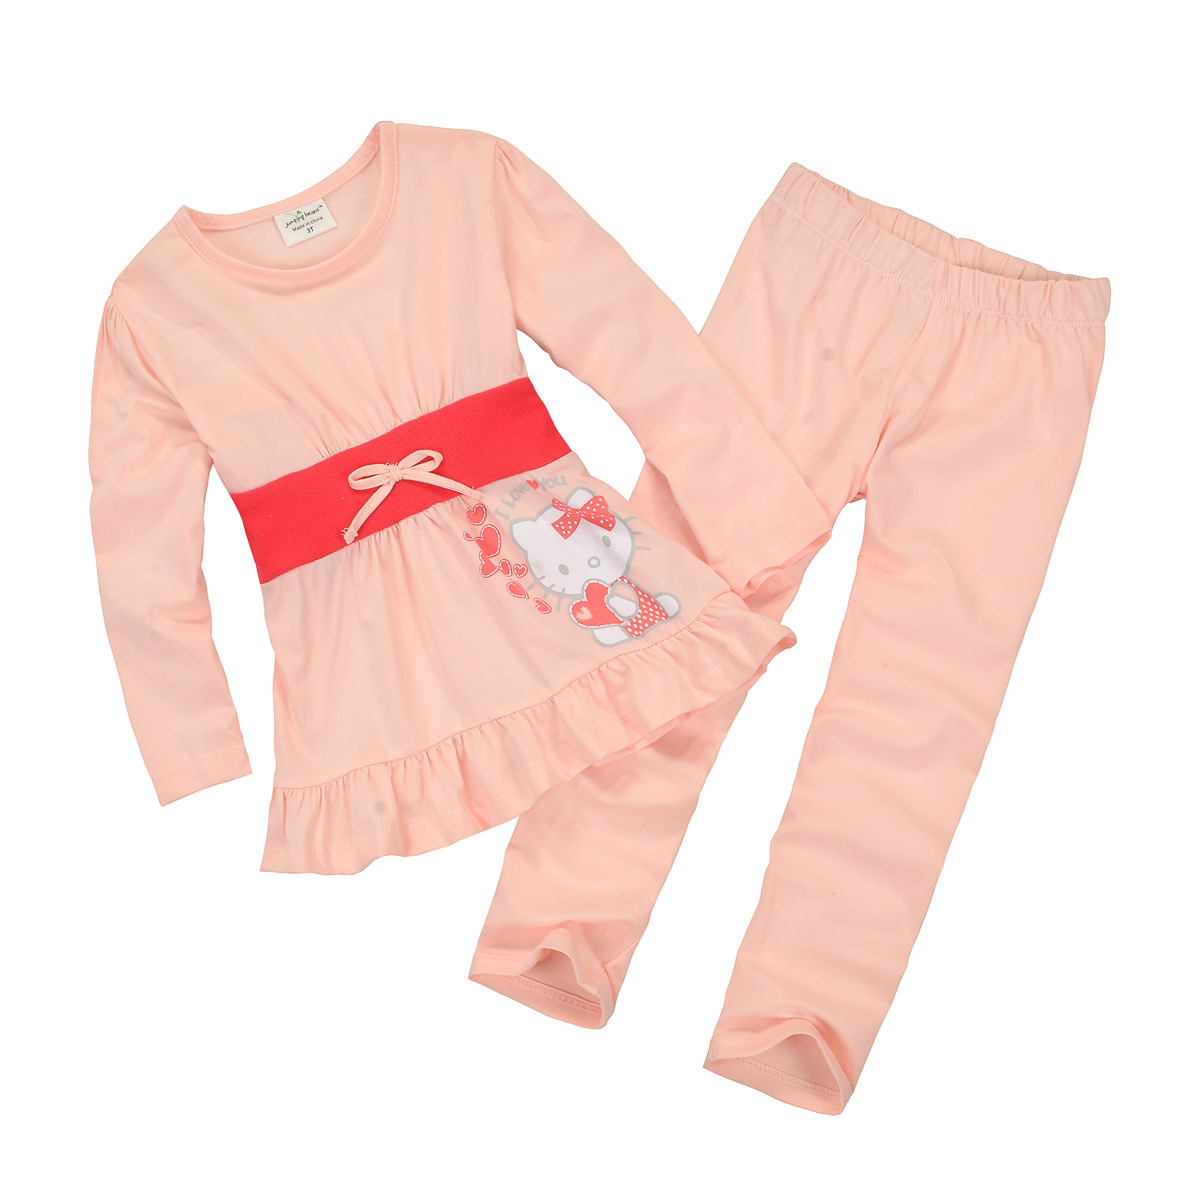 2015 Fashion Girl Leisure Wear Children Homwear Pink Kittys Dress + Pants for Baby Girls 18M-6y Cotton Girls Clothes Set Suits<br><br>Aliexpress